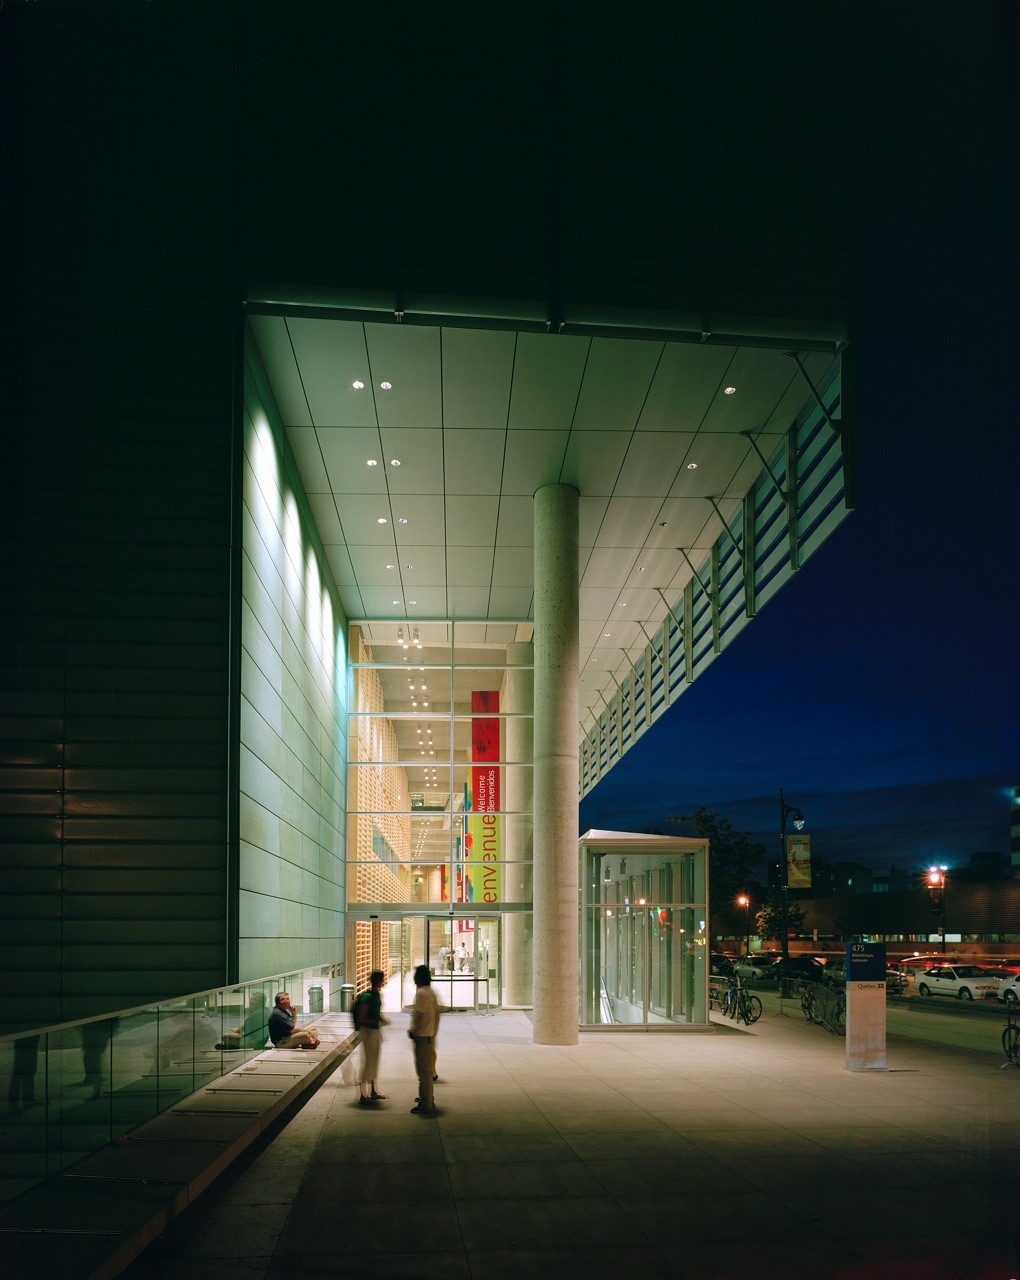 Grand Library of Québec / Patkau Architects  + Croft Pelletier + Menkès Shooner Dagenais architectes associés, © Bernard Fougeres